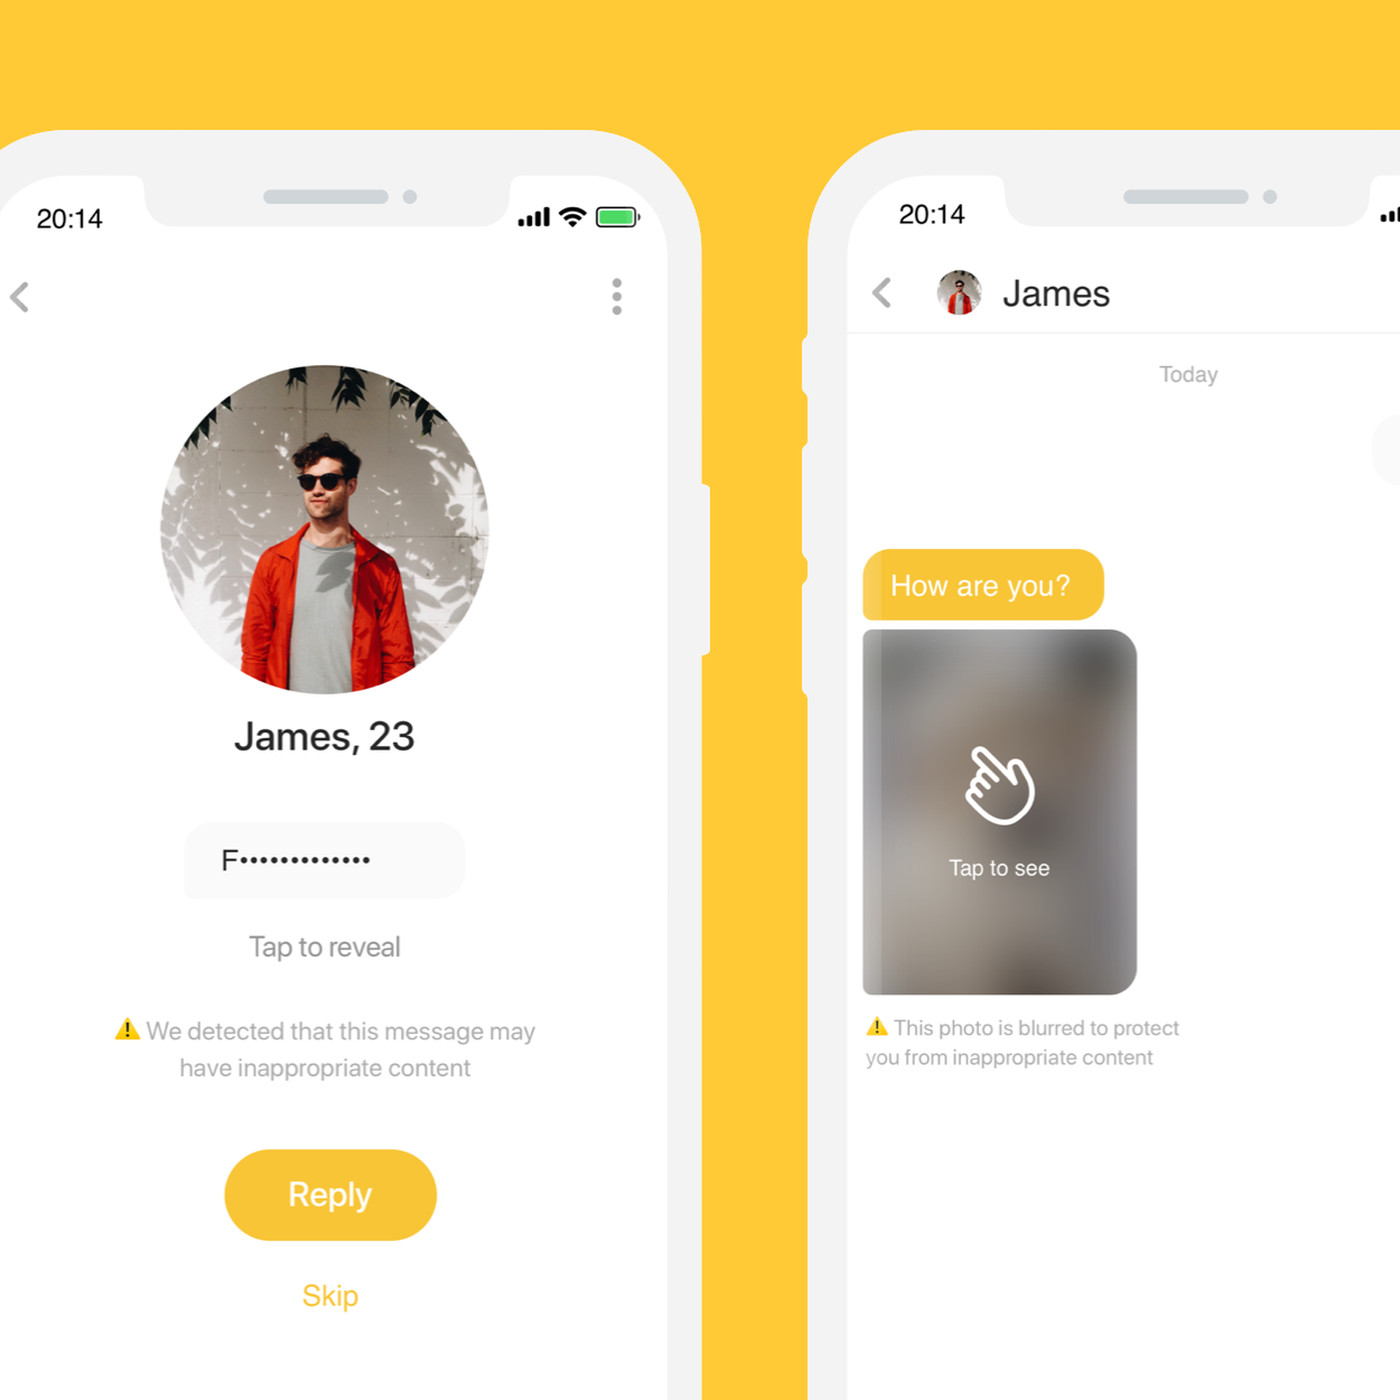 Bumble's 'private detector' AI will automatically detect and